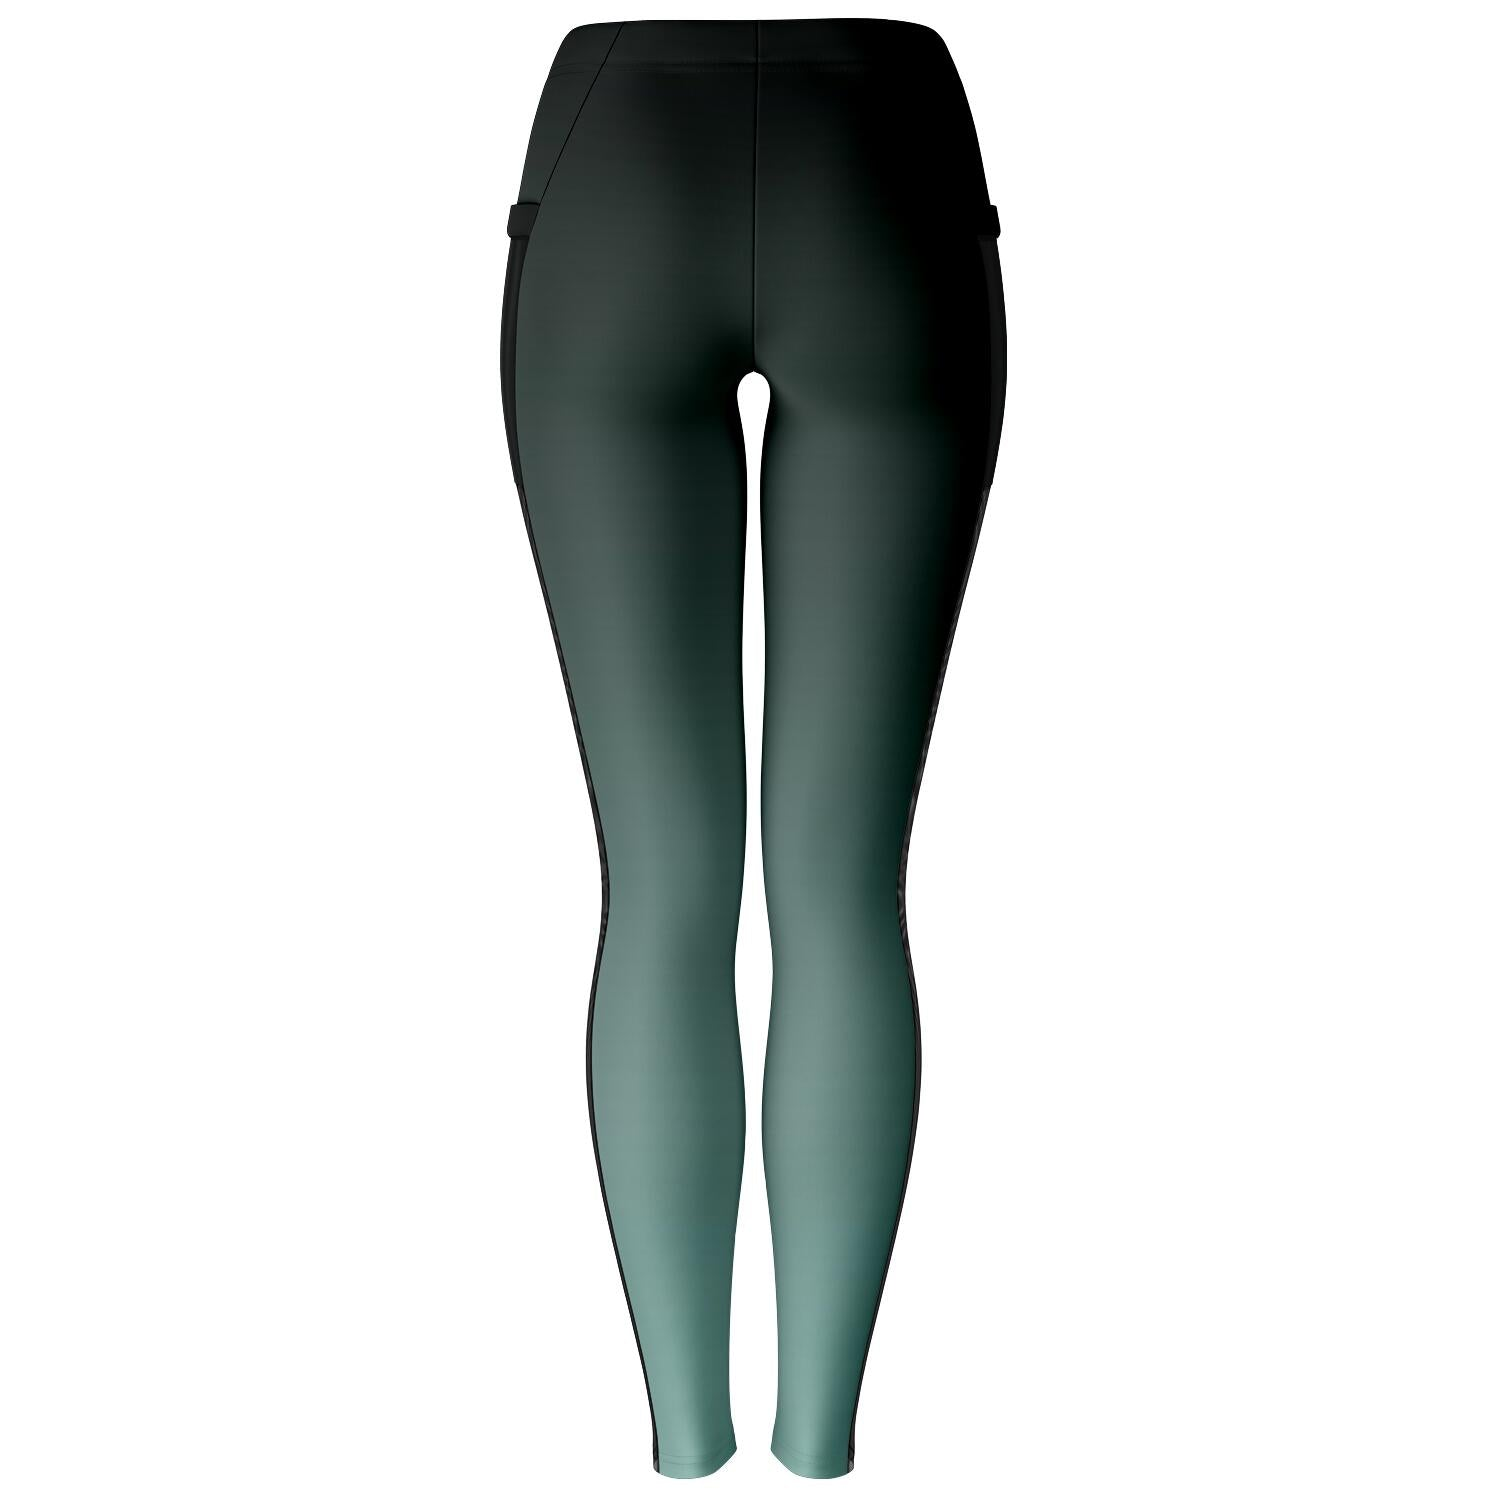 Black to Turquoise Ombre Mesh Panel Leggings